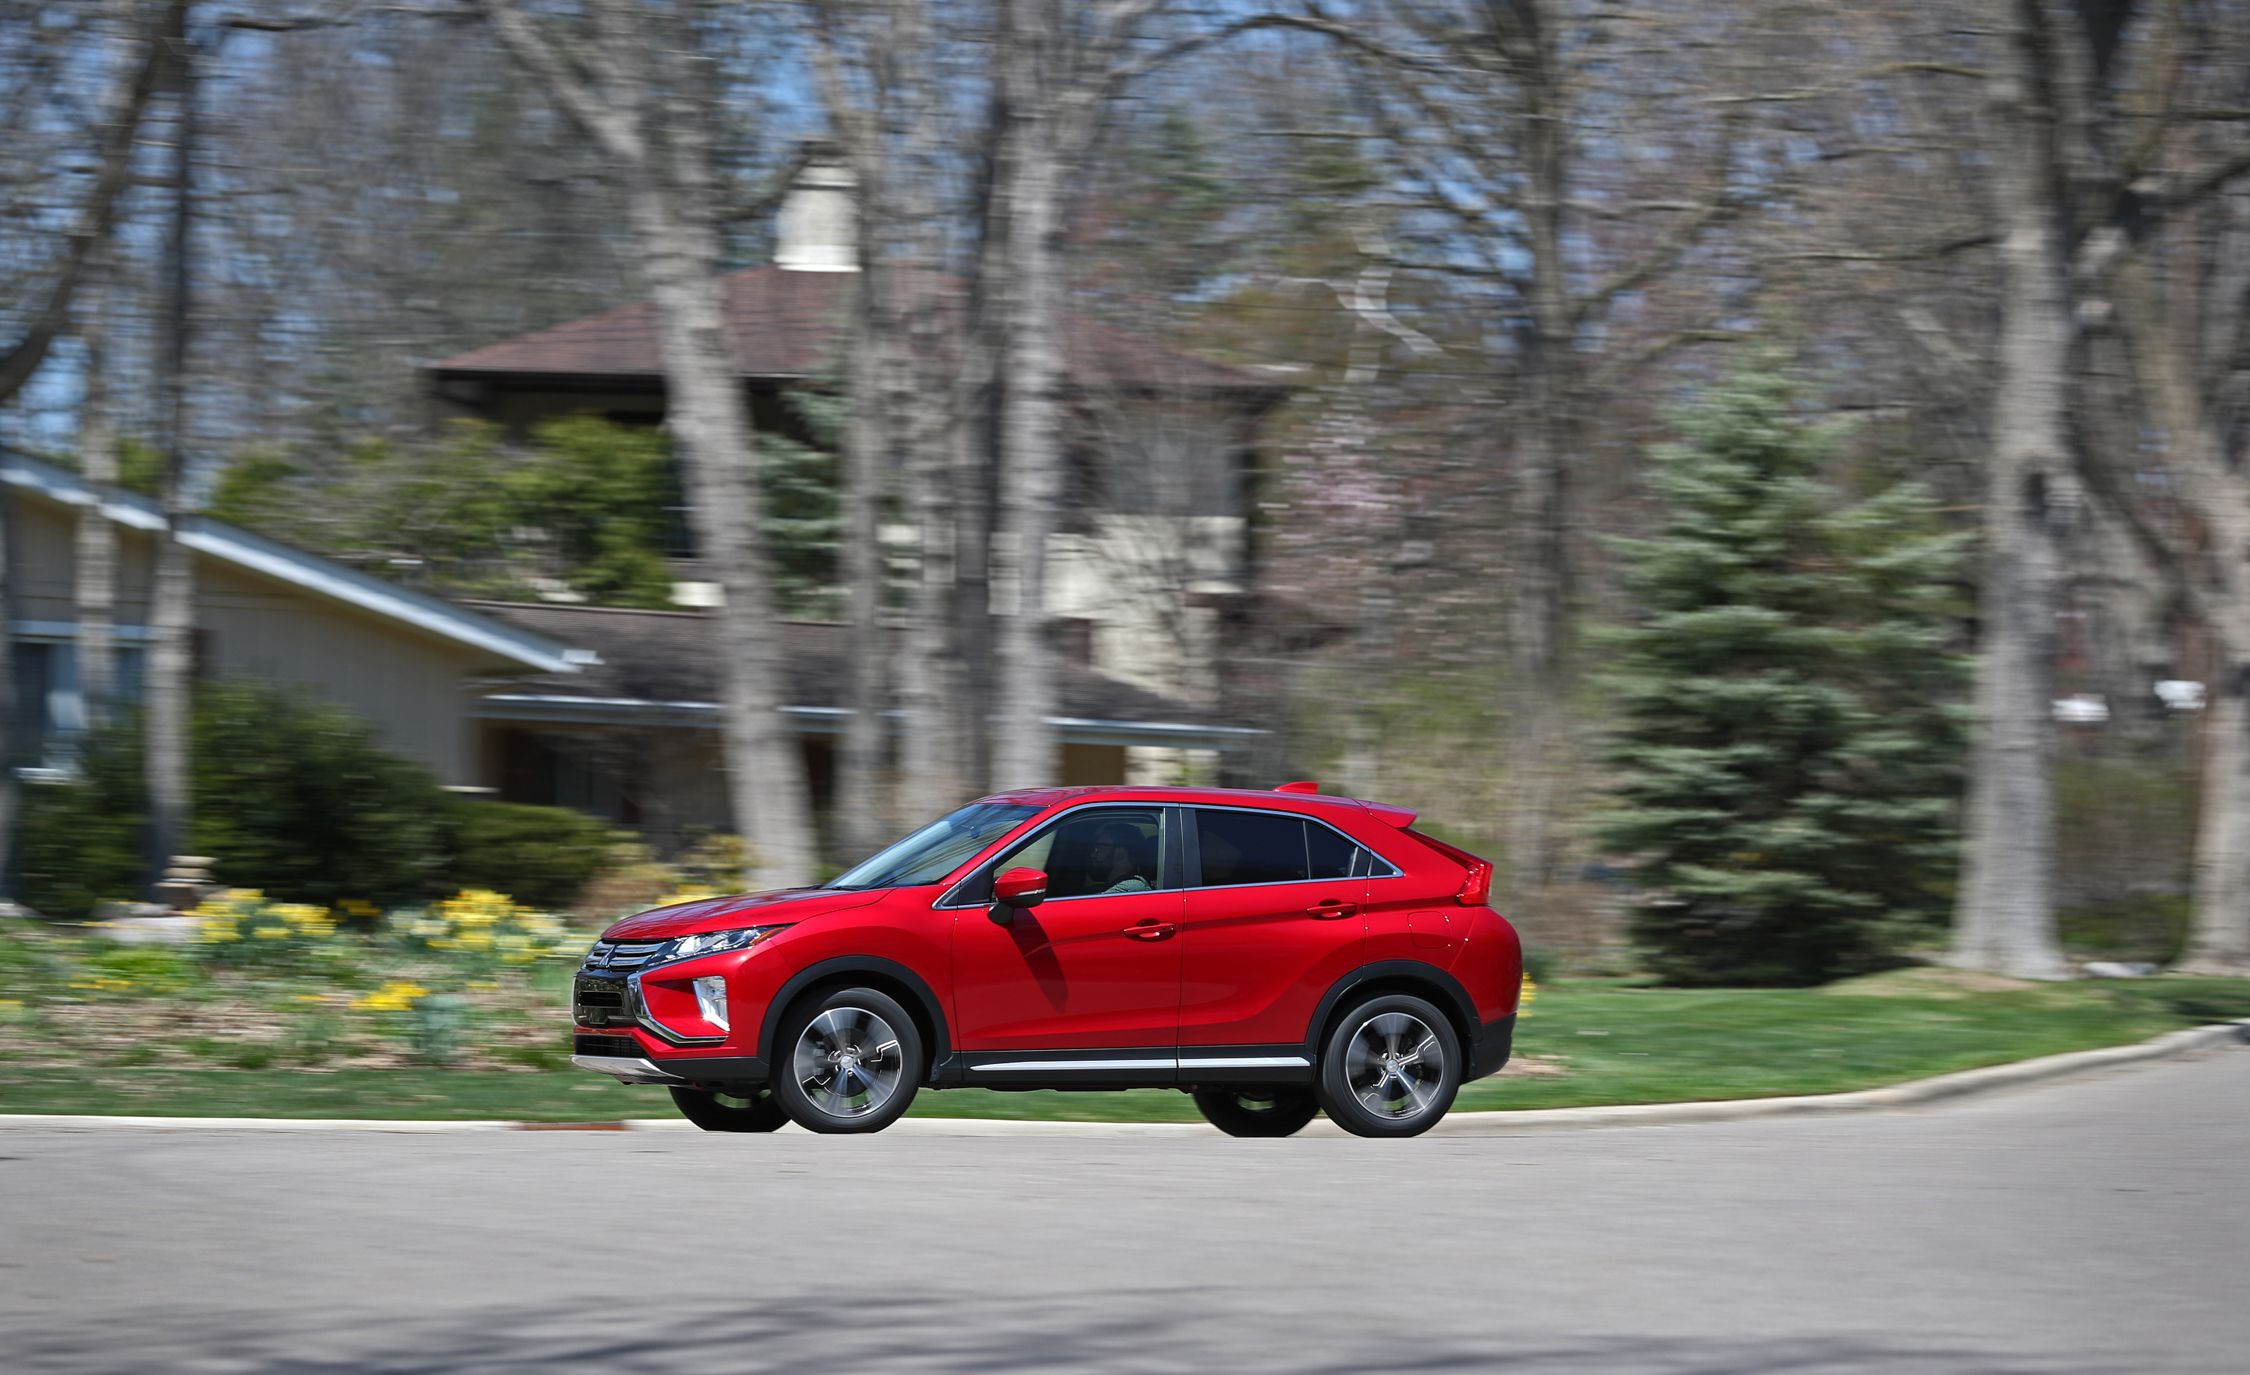 2019 Mitsubishi Eclipse Cross Reviews Price Photos And Specs Car Driver